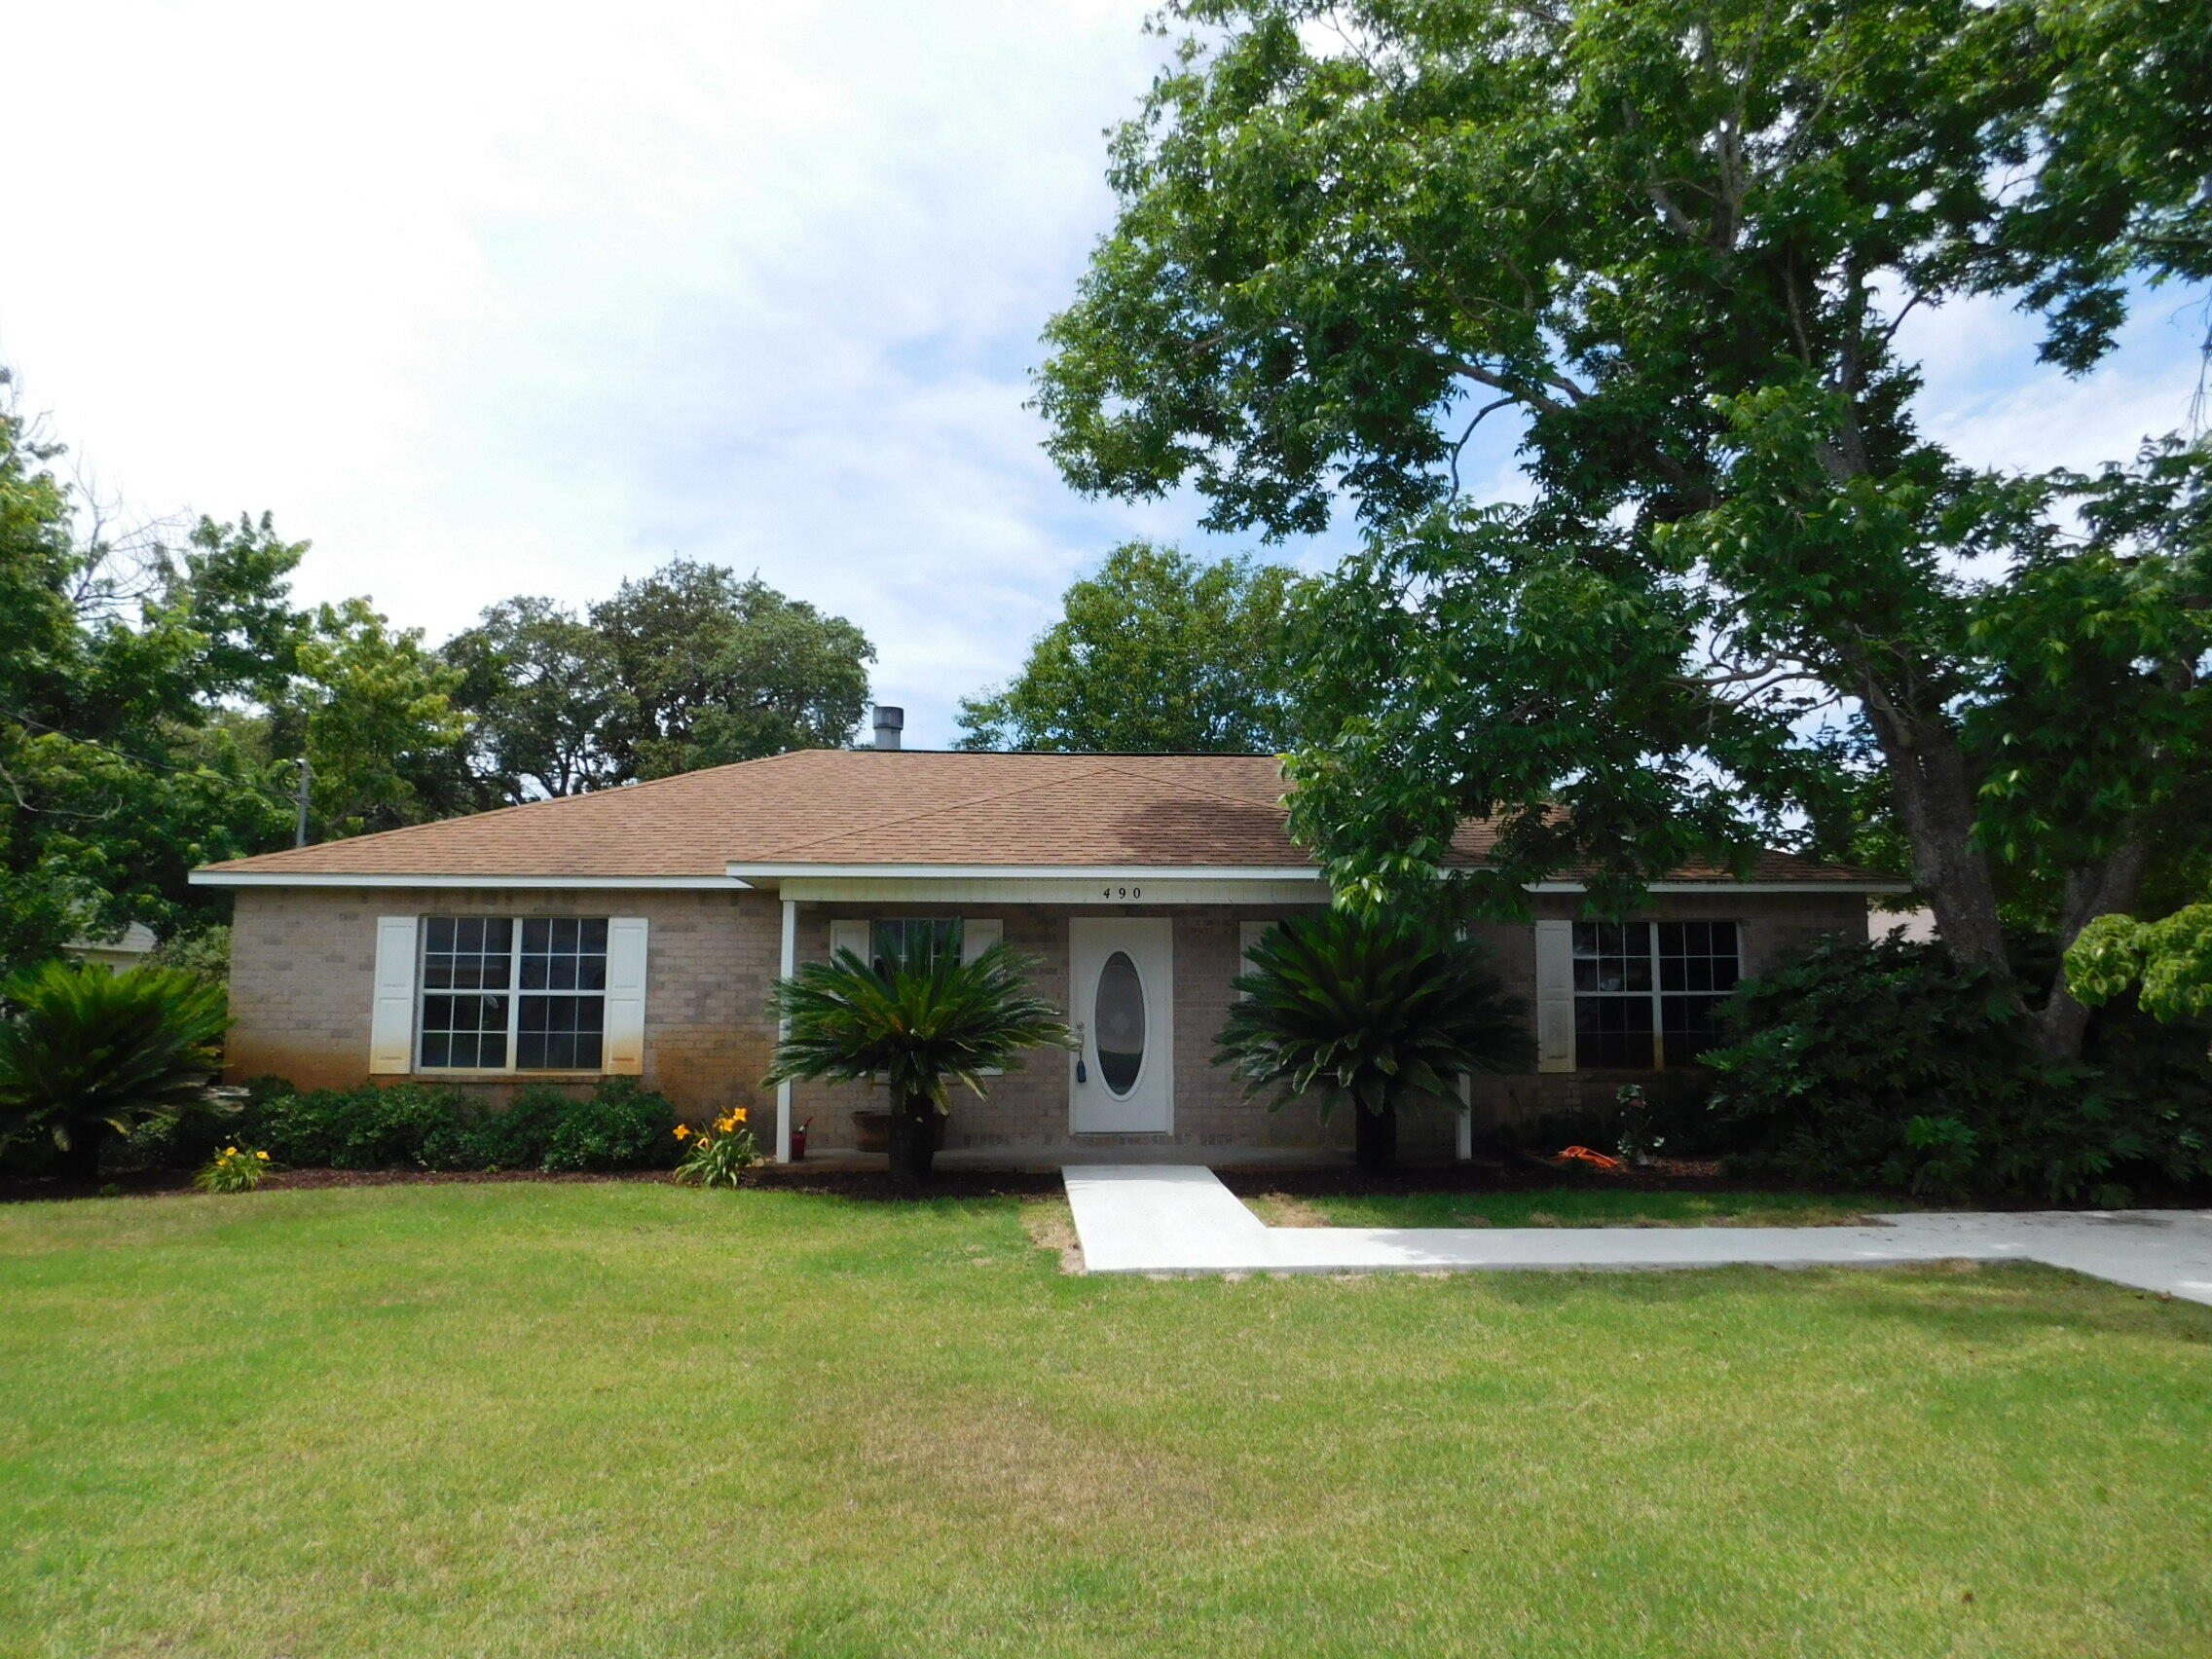 Come on in to this great home located only minutes to Hurlburt AFB.  As you enter home you will be greeted by the open, bright and light great room. Split bedroom plan offers 3 bedrooms and 2 bathrooms.  Master has two walk in closest.  Kitchen has a breakfast bar as well as a large nook area.  Large laundry room is big enought for a second refrigerator. Out back is a hot tub that will convey.  Home has a brand new driveway and sidewalk to the home. Please note seller is still doing work on the home.